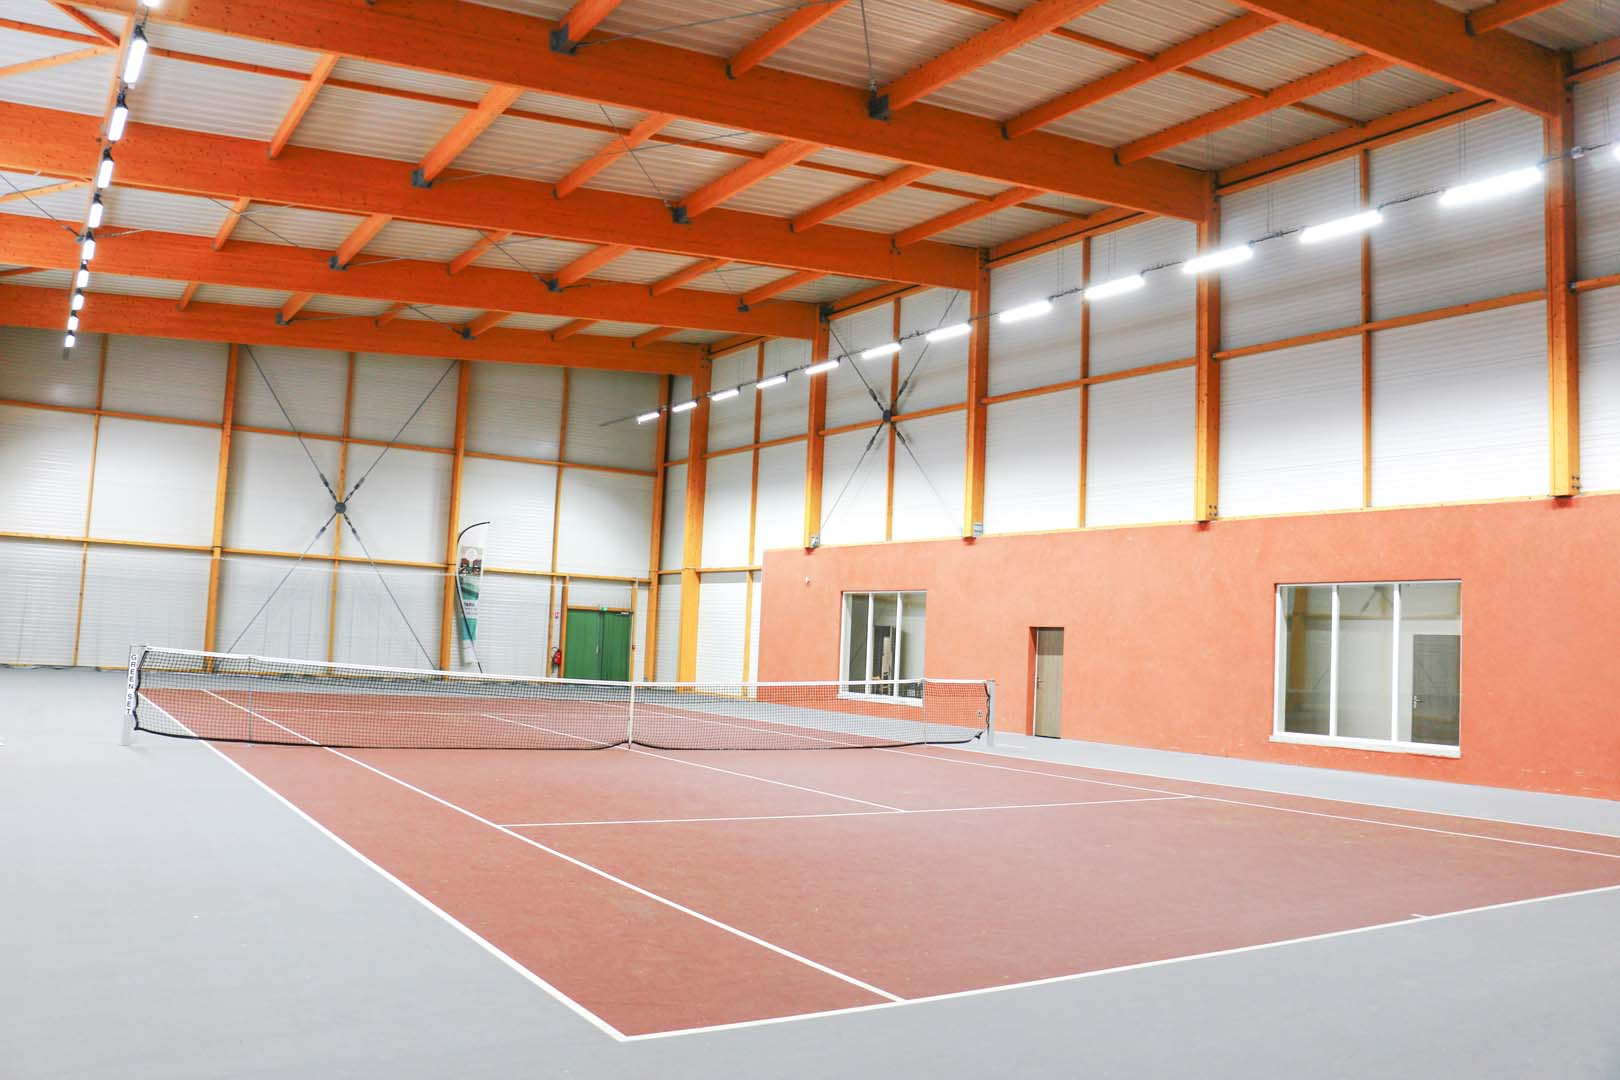 NLX-Tennis-ligue-val-d-oise-01